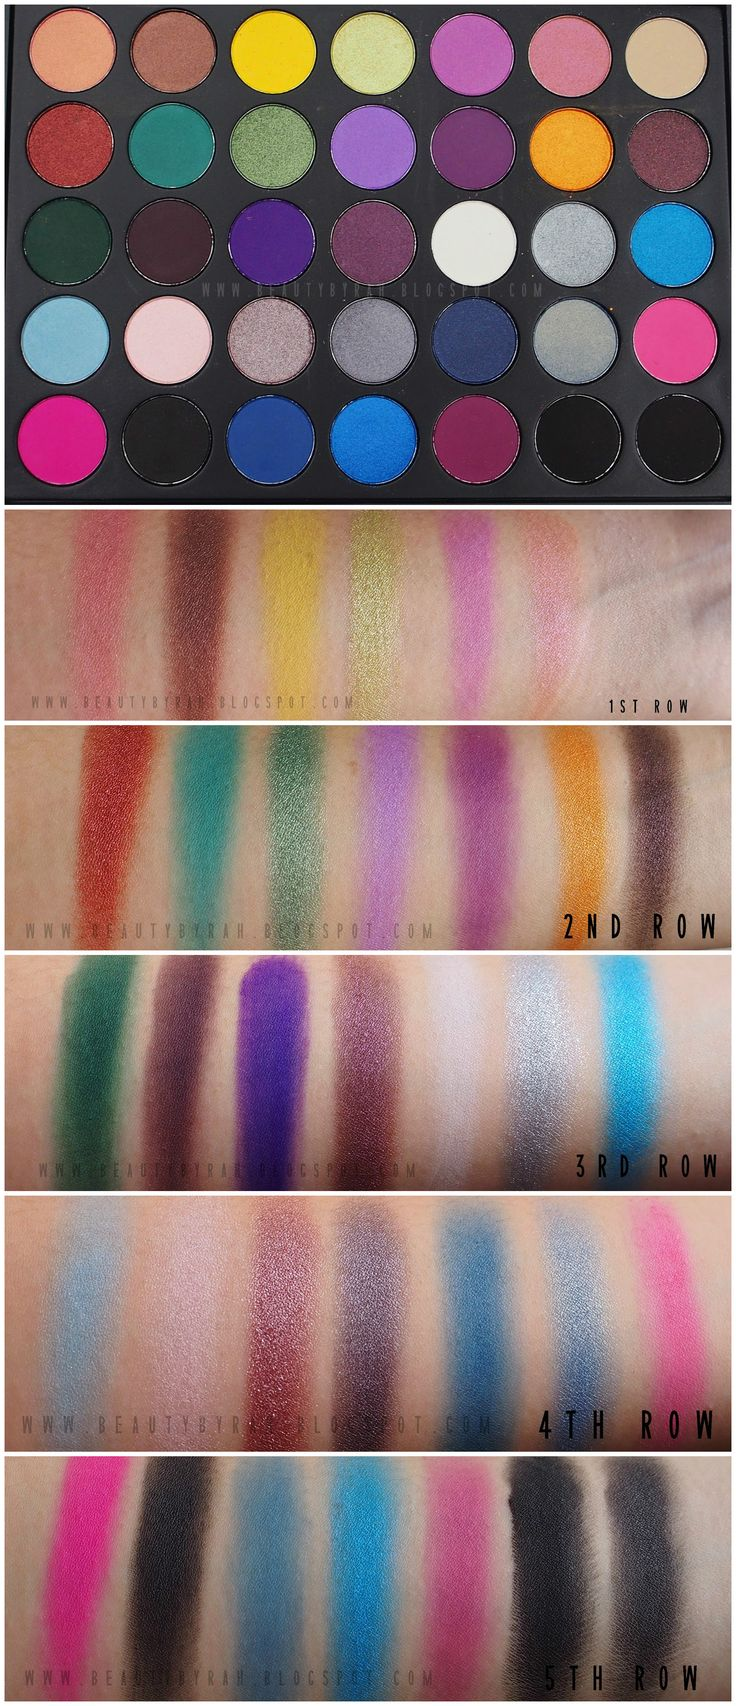 morphe brushes eyeshadow review. review \u0026 swatches | morphe brushes 35s smokey palette morphe brushes eyeshadow review e